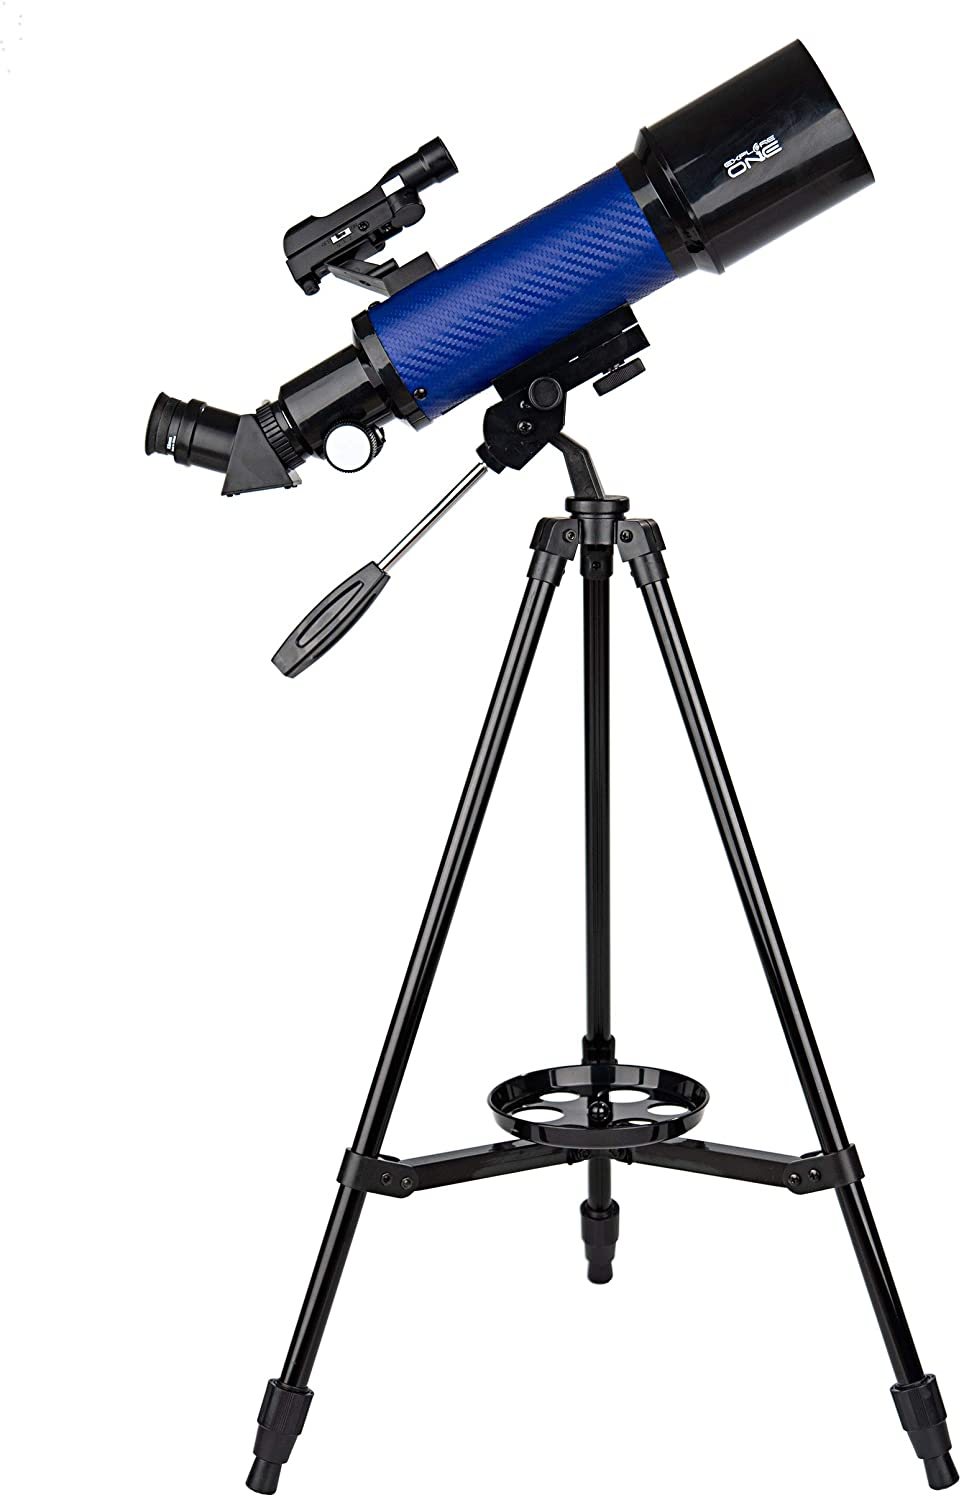 Explore One CF400SP Astronomy and Terrestrial Telescope with 20x to 67x Magnification - 70mm Aperture - 400mm Focal Length - Smartphone Adapter - Easy-to-Use Beginner Telescope for Kids and Adults